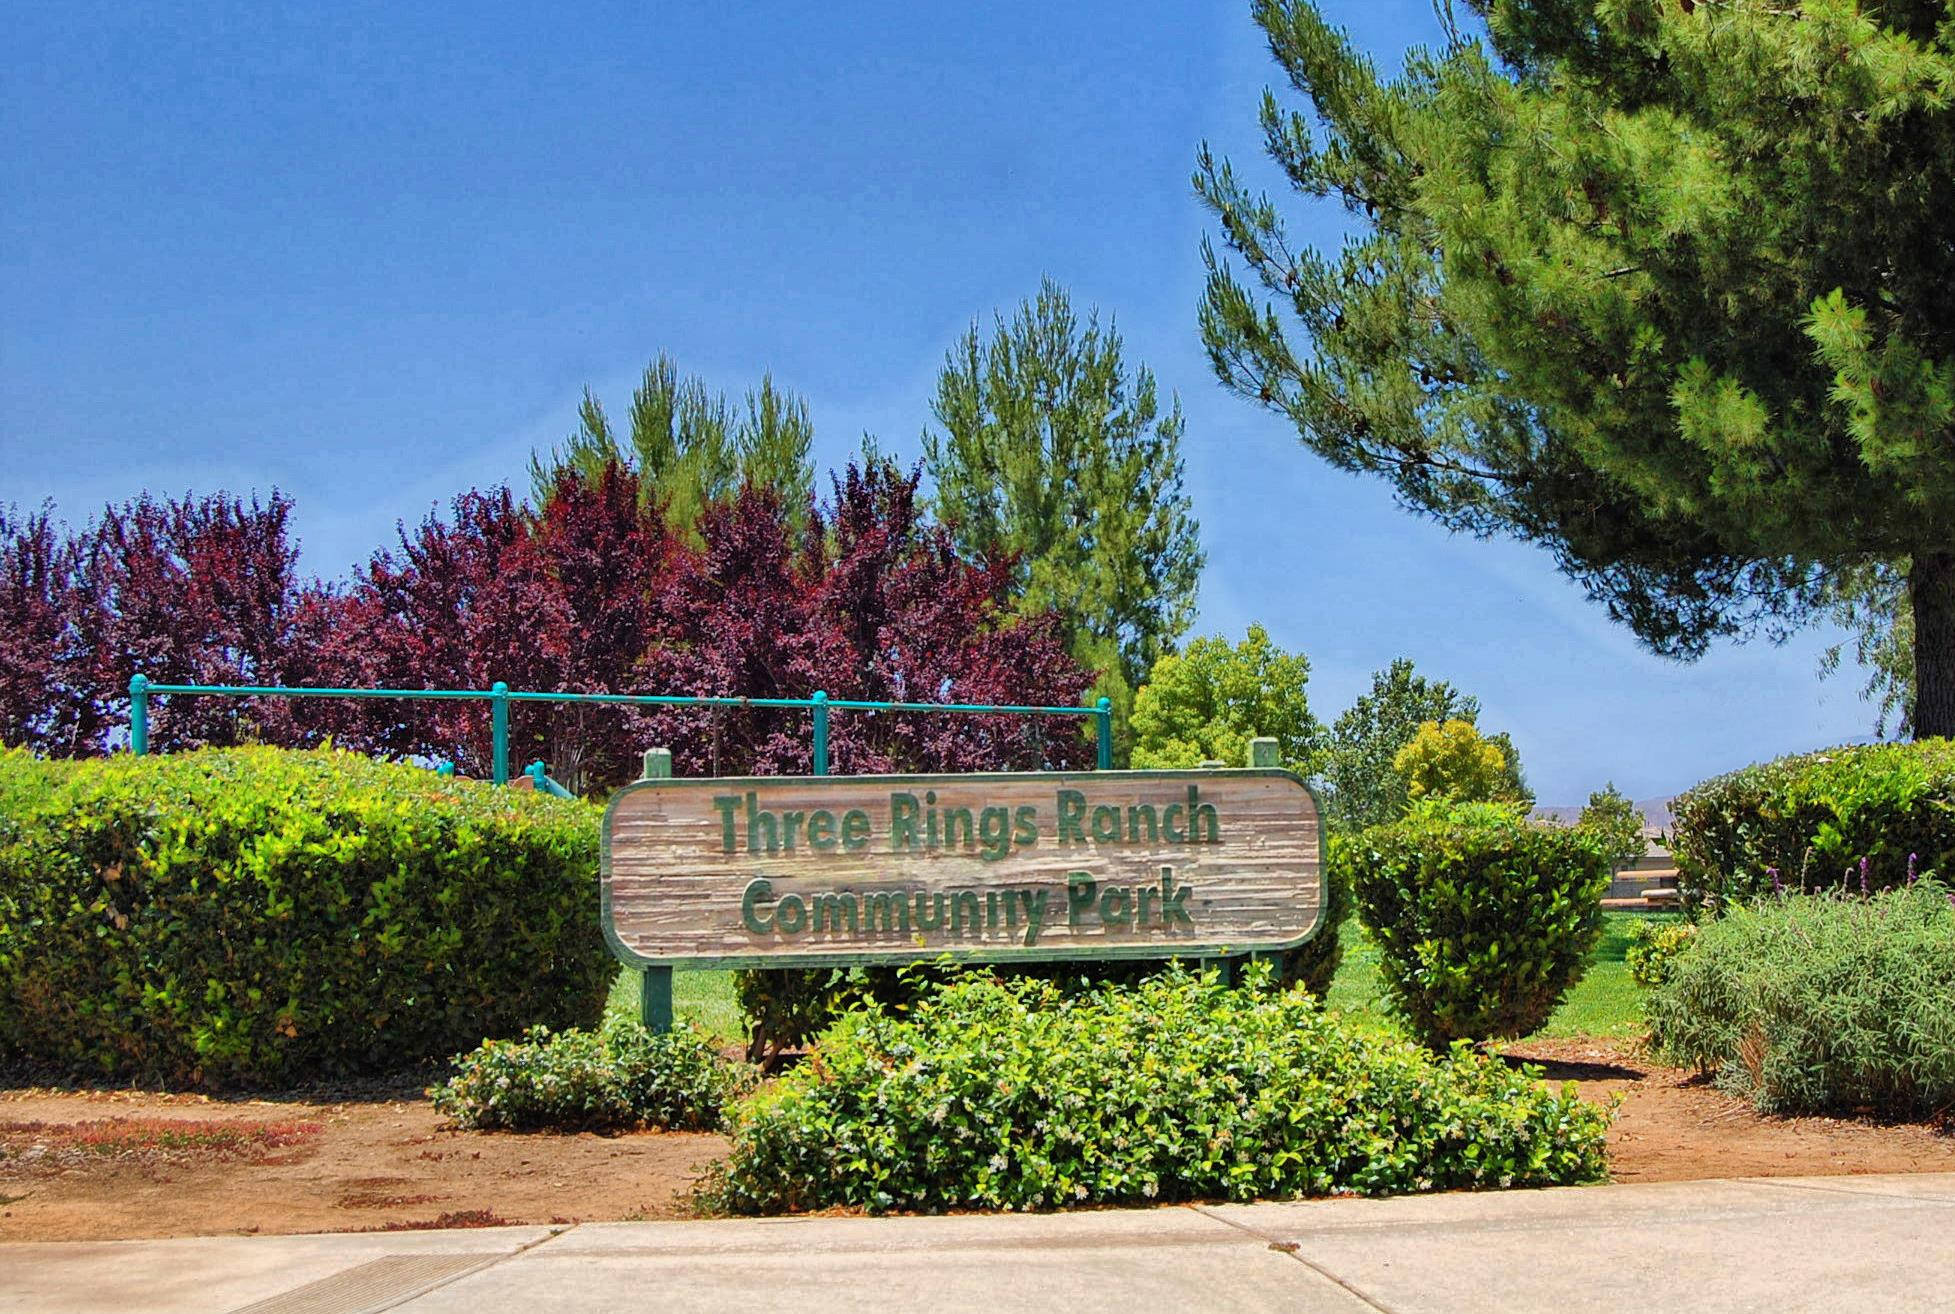 Three Rings Ranch in Beaumont California